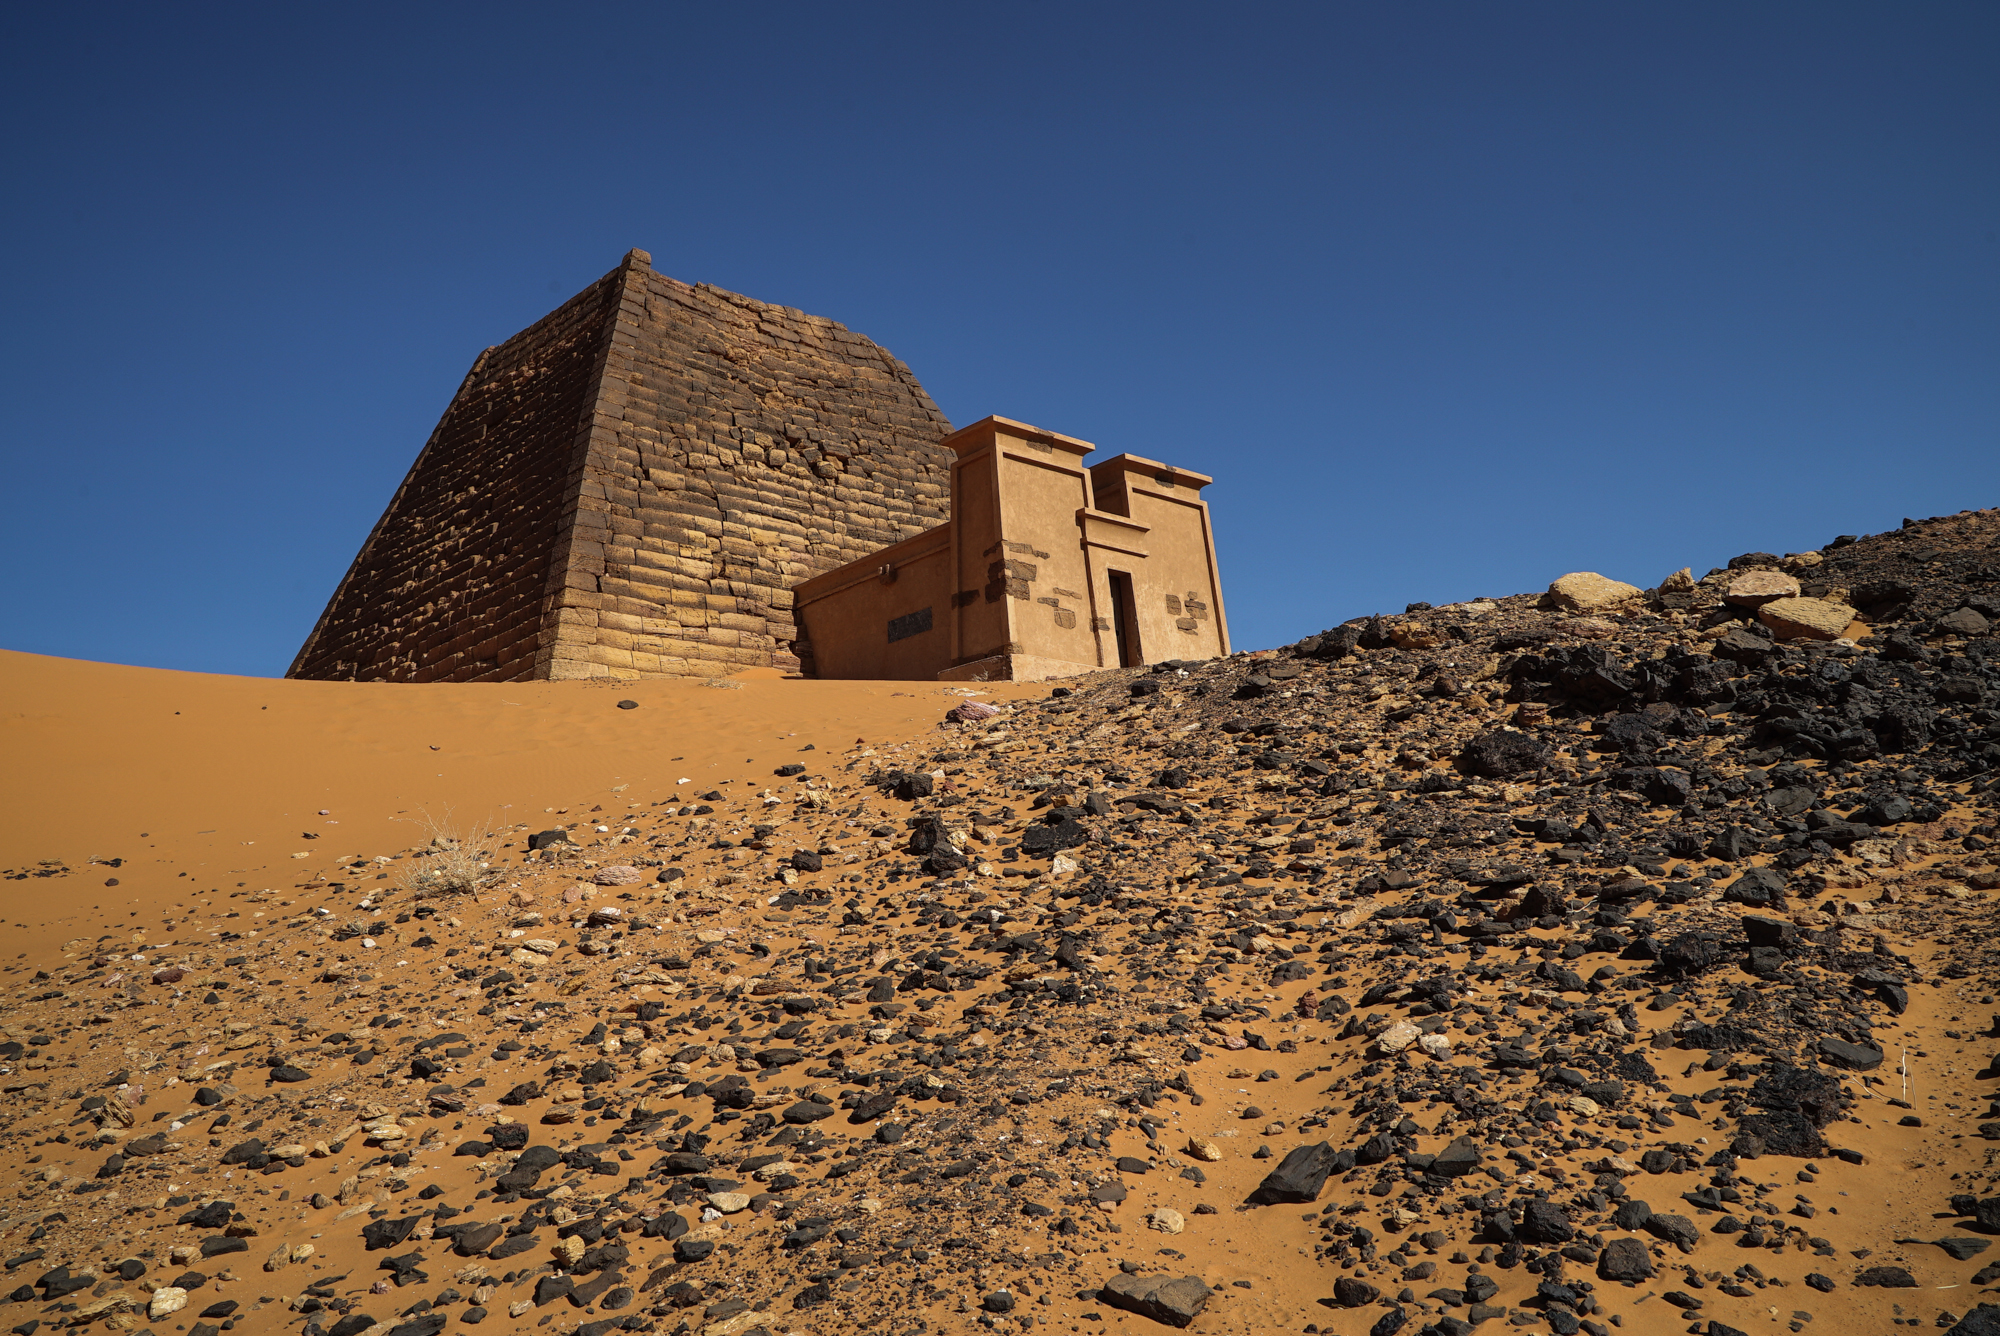 The Nubian Meroe pyramids are the best preserved of the more than 220 pyramids in Sudan. They are the burial sites for more than 40 Nubian kings and queens of the Kush kingdom. [Sorin Furcoi/Al Jazeera]